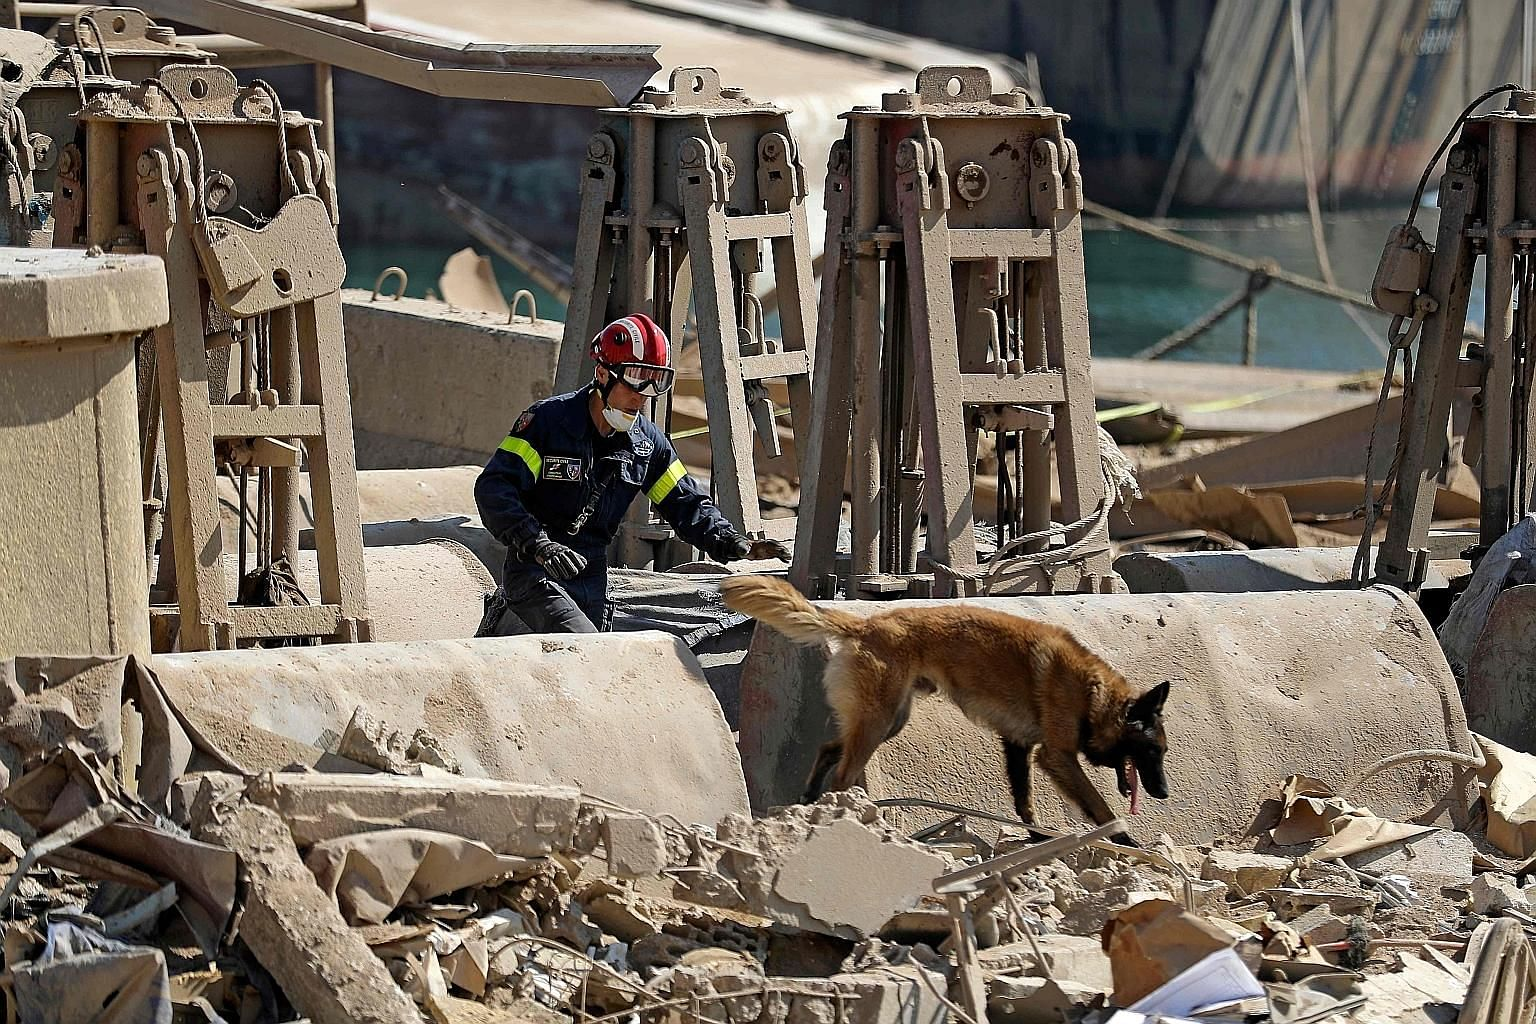 A French rescue worker and his sniffer dog searching for survivors at Beirut's devastated port yesterday, three days after a massive explosion shook the Lebanese capital - killing 154 people and injuring more than 5,000. PHOTO: AGENCE FRANCE-PRESSE